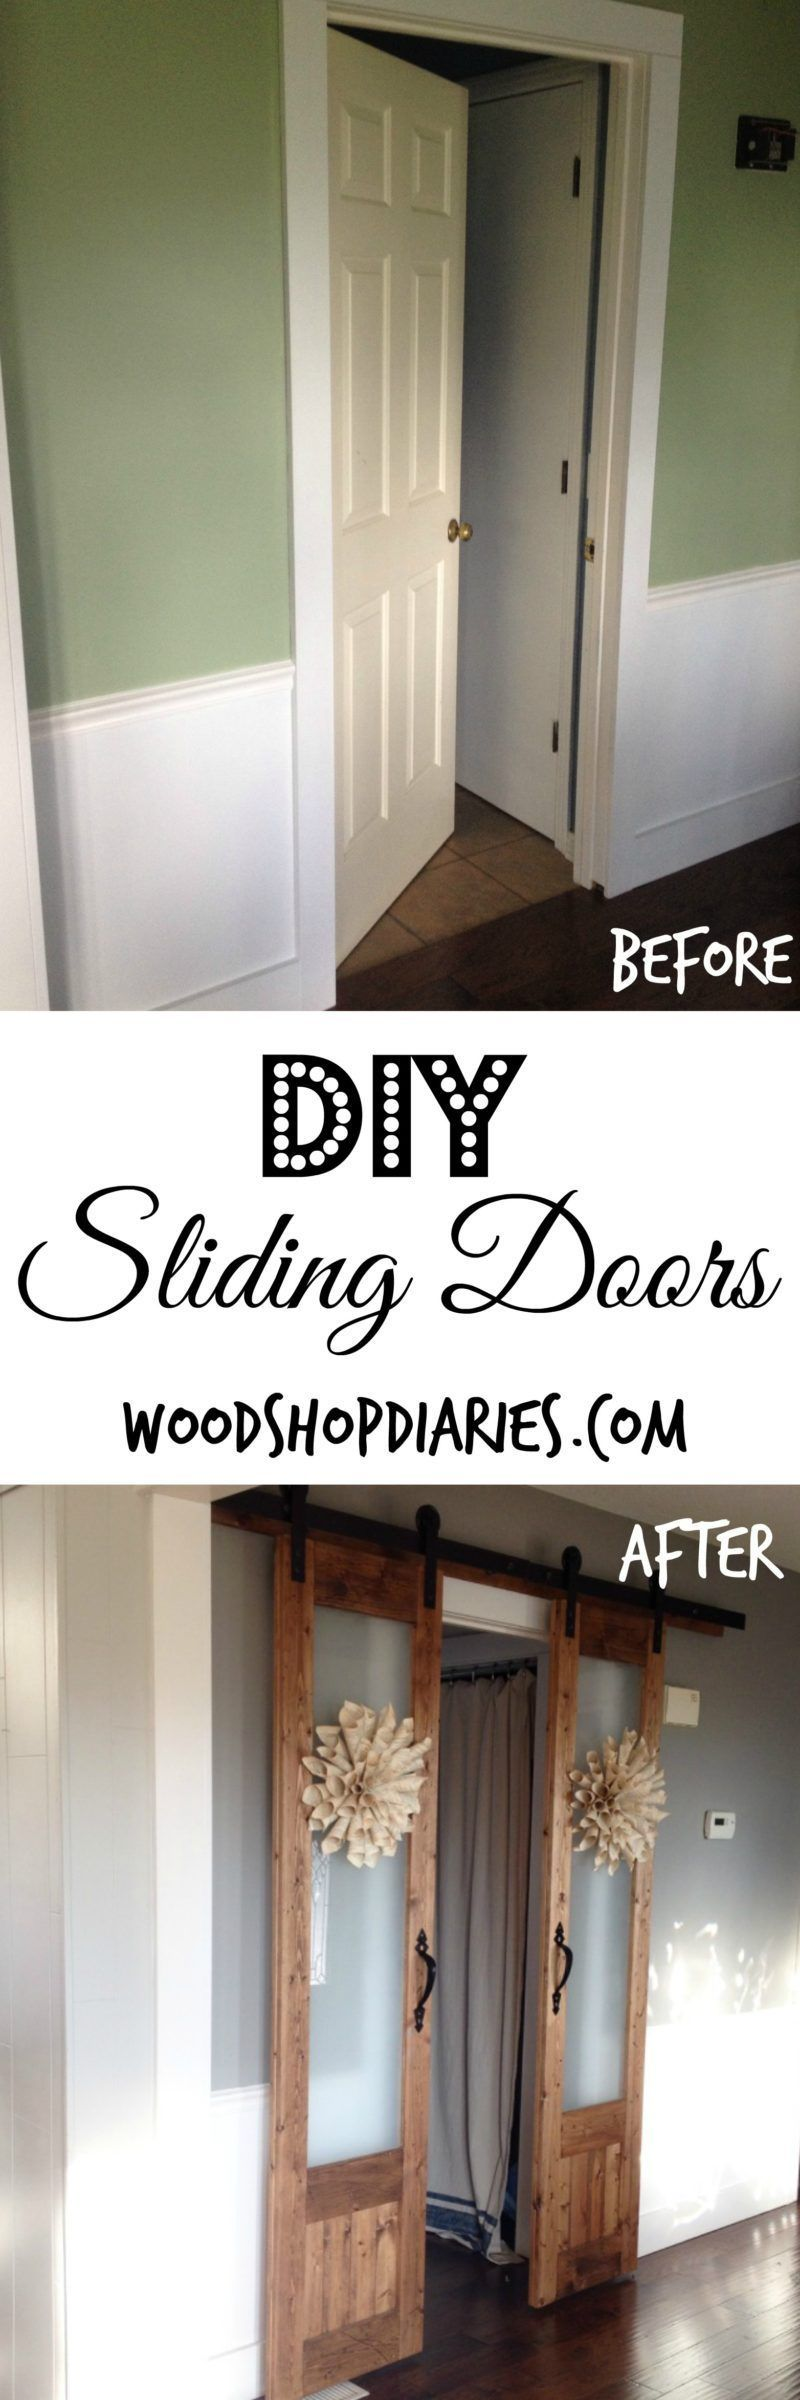 Turn An Old Hollow Core Door Into French Sliding Doors And Diy Hardware For About 100 Home Remodeling Diy Home Diy Sliding Doors Interior